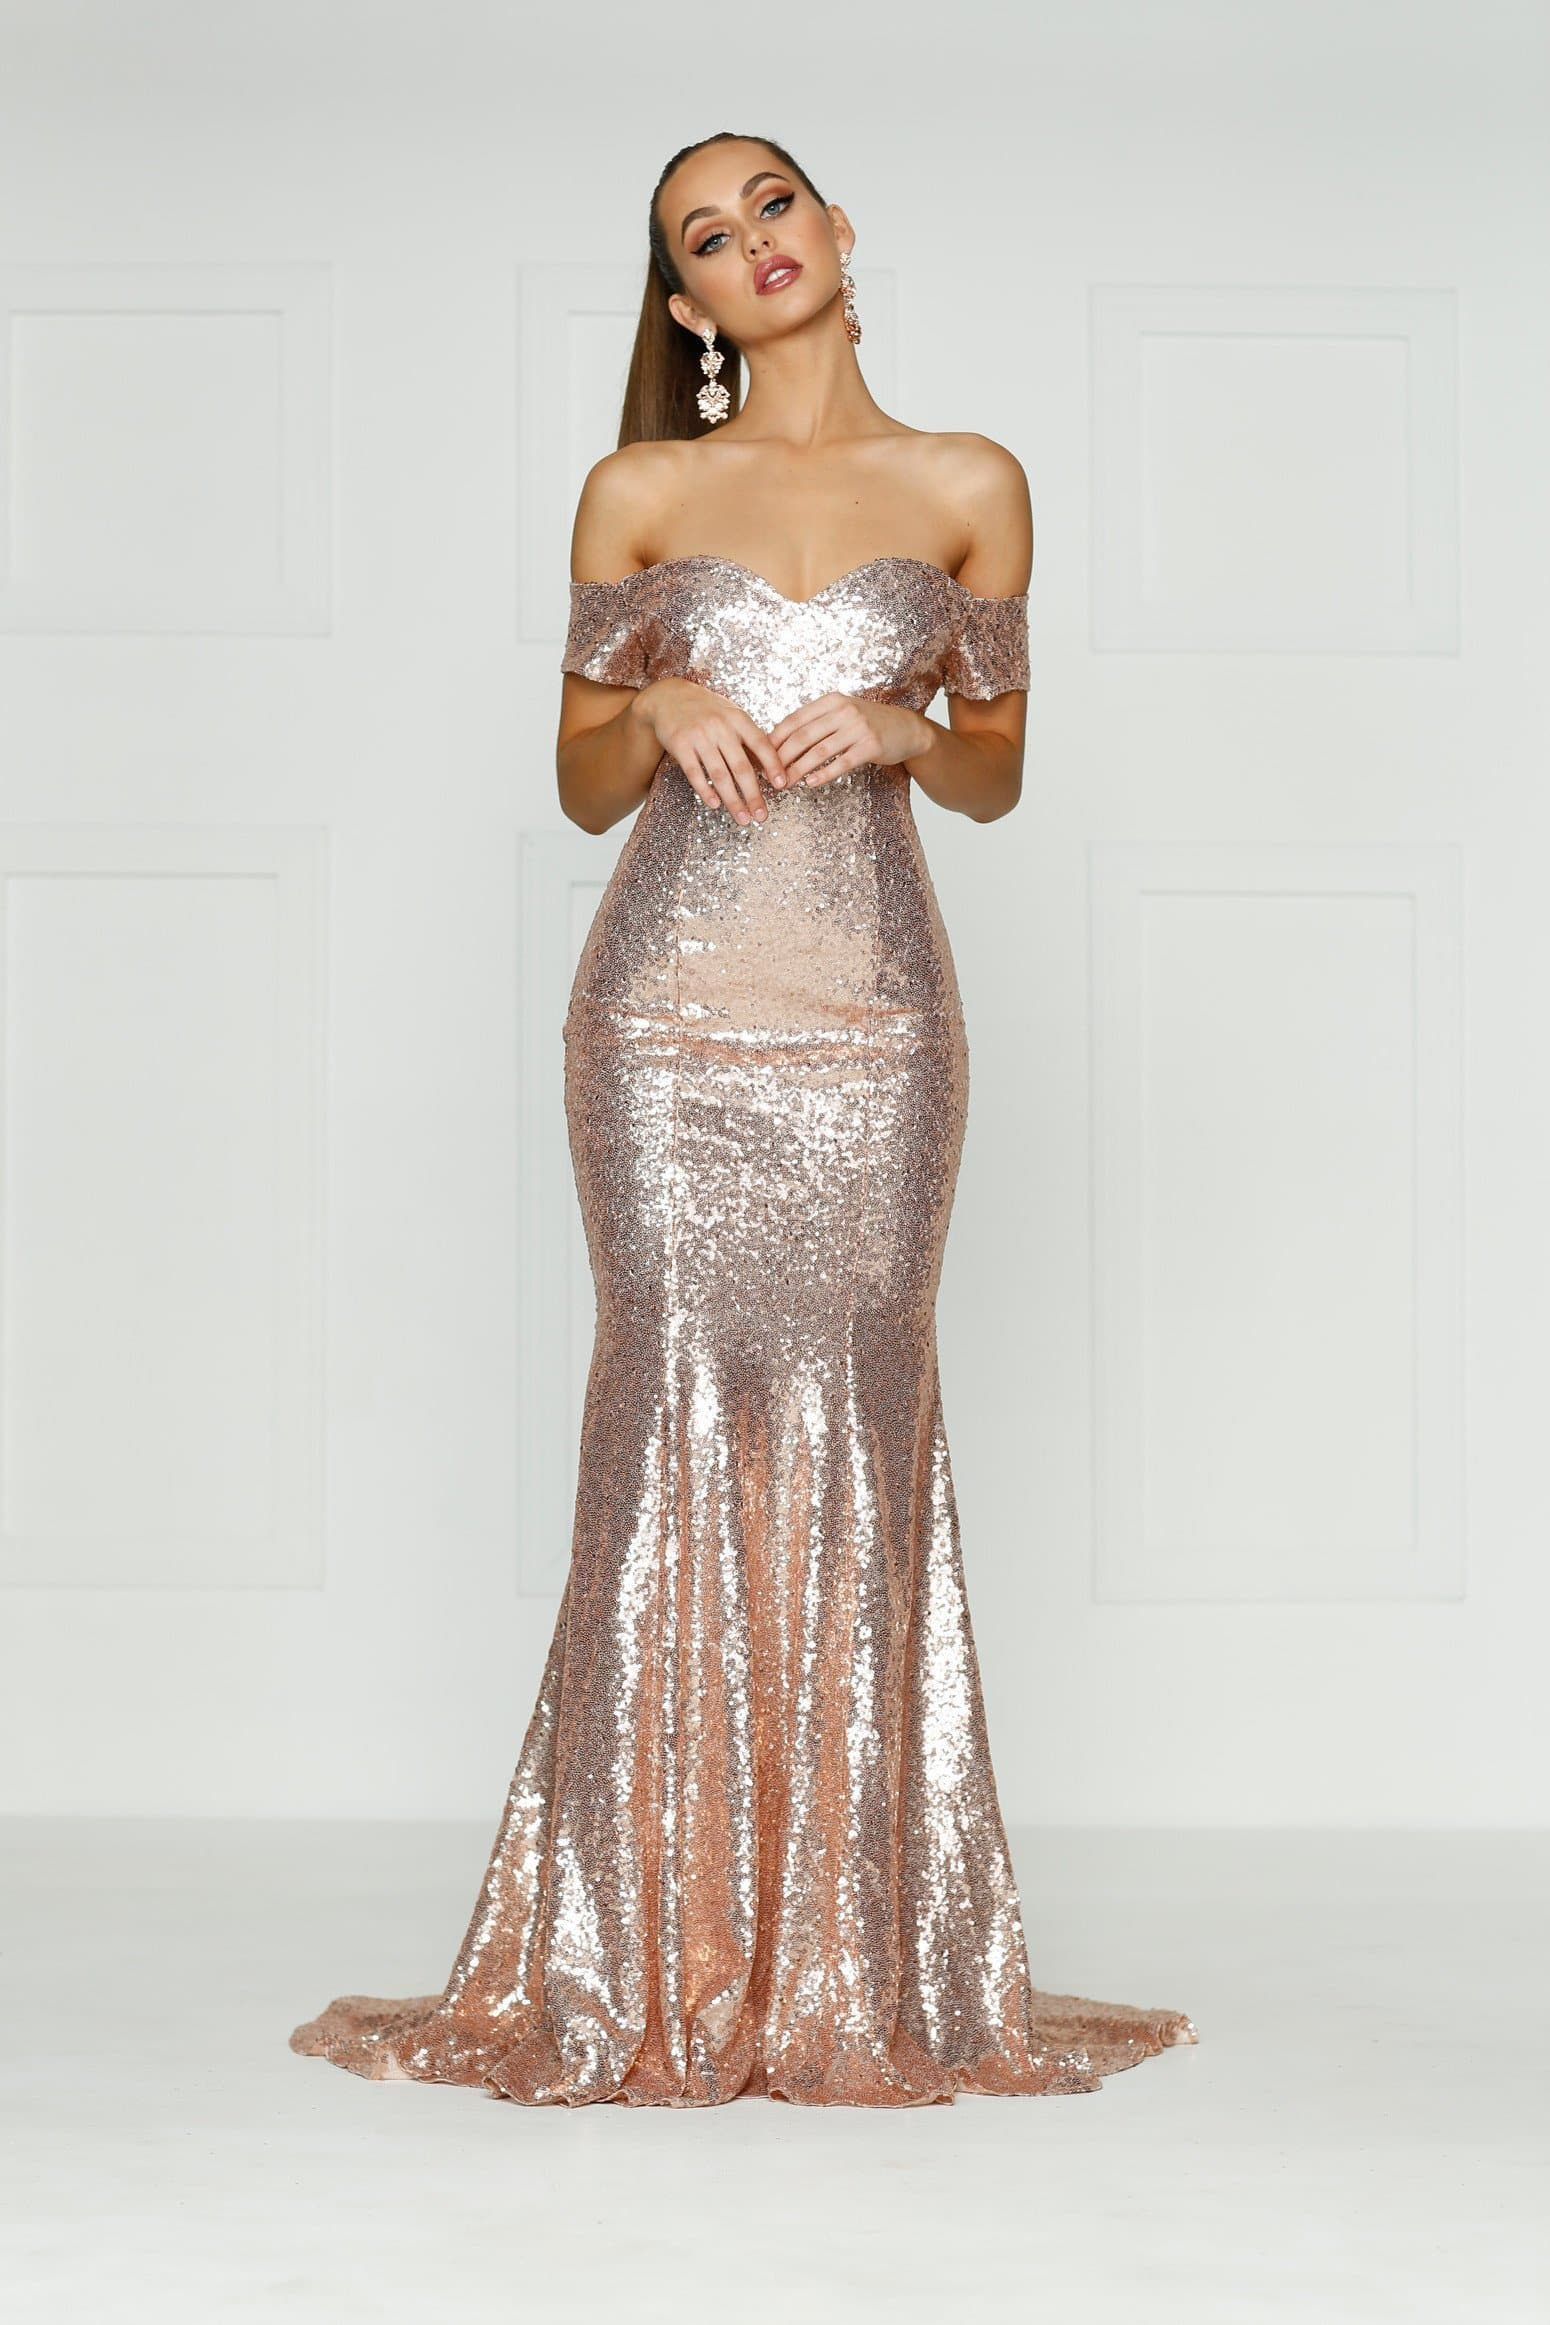 06b3eb4efdeb A N Kim - Rose Gold Off-Shoulder Dress with Mermaid Train – A N Luxe ...